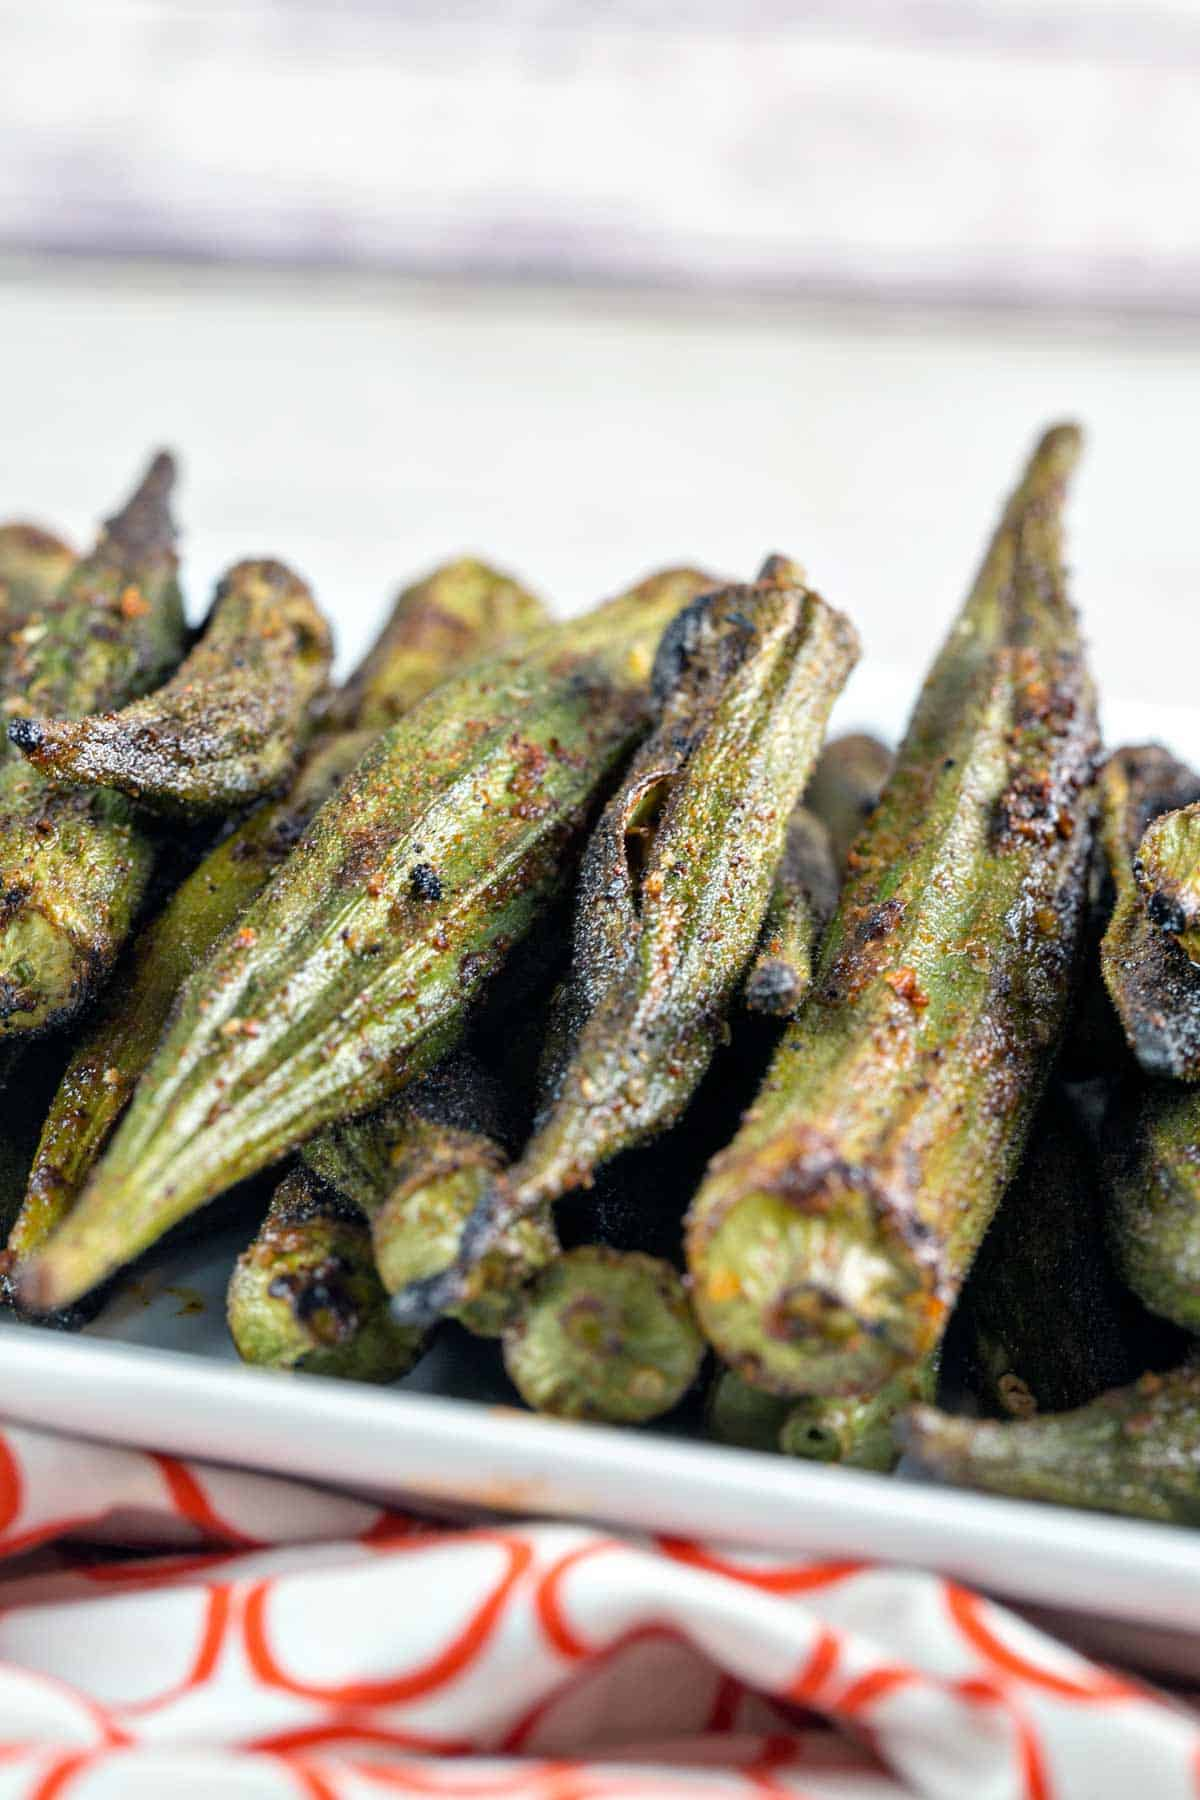 Spicy Grilled Okra: Toss some okra on the grill for a crunchy, creamy, slime-free side. {Bunsen Burner Bakery} #okra #grilling #glutenfree #vegan